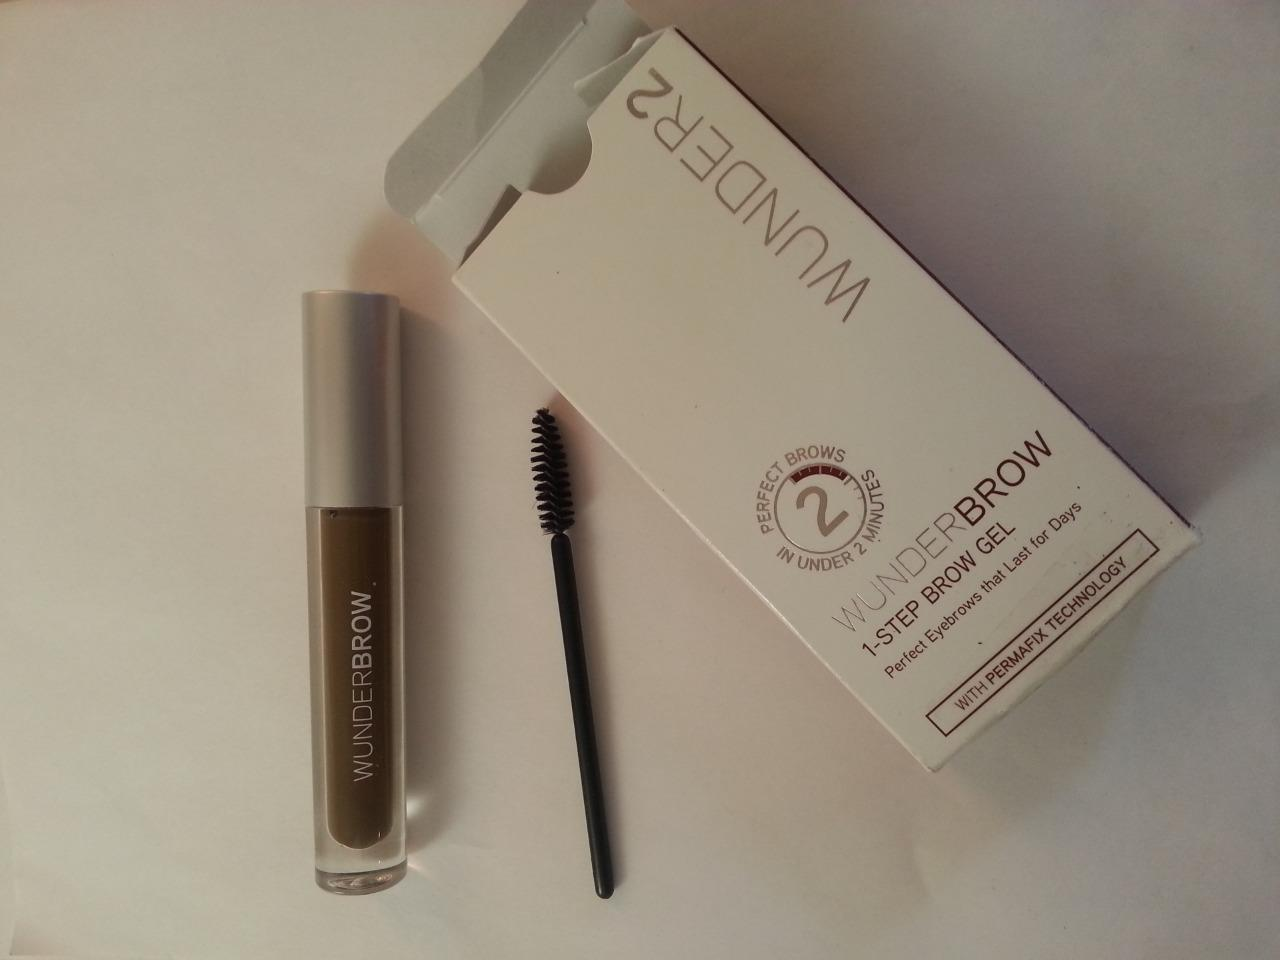 Original WunderBrow - Perfect brows that last for Days in Under 2 Minu...